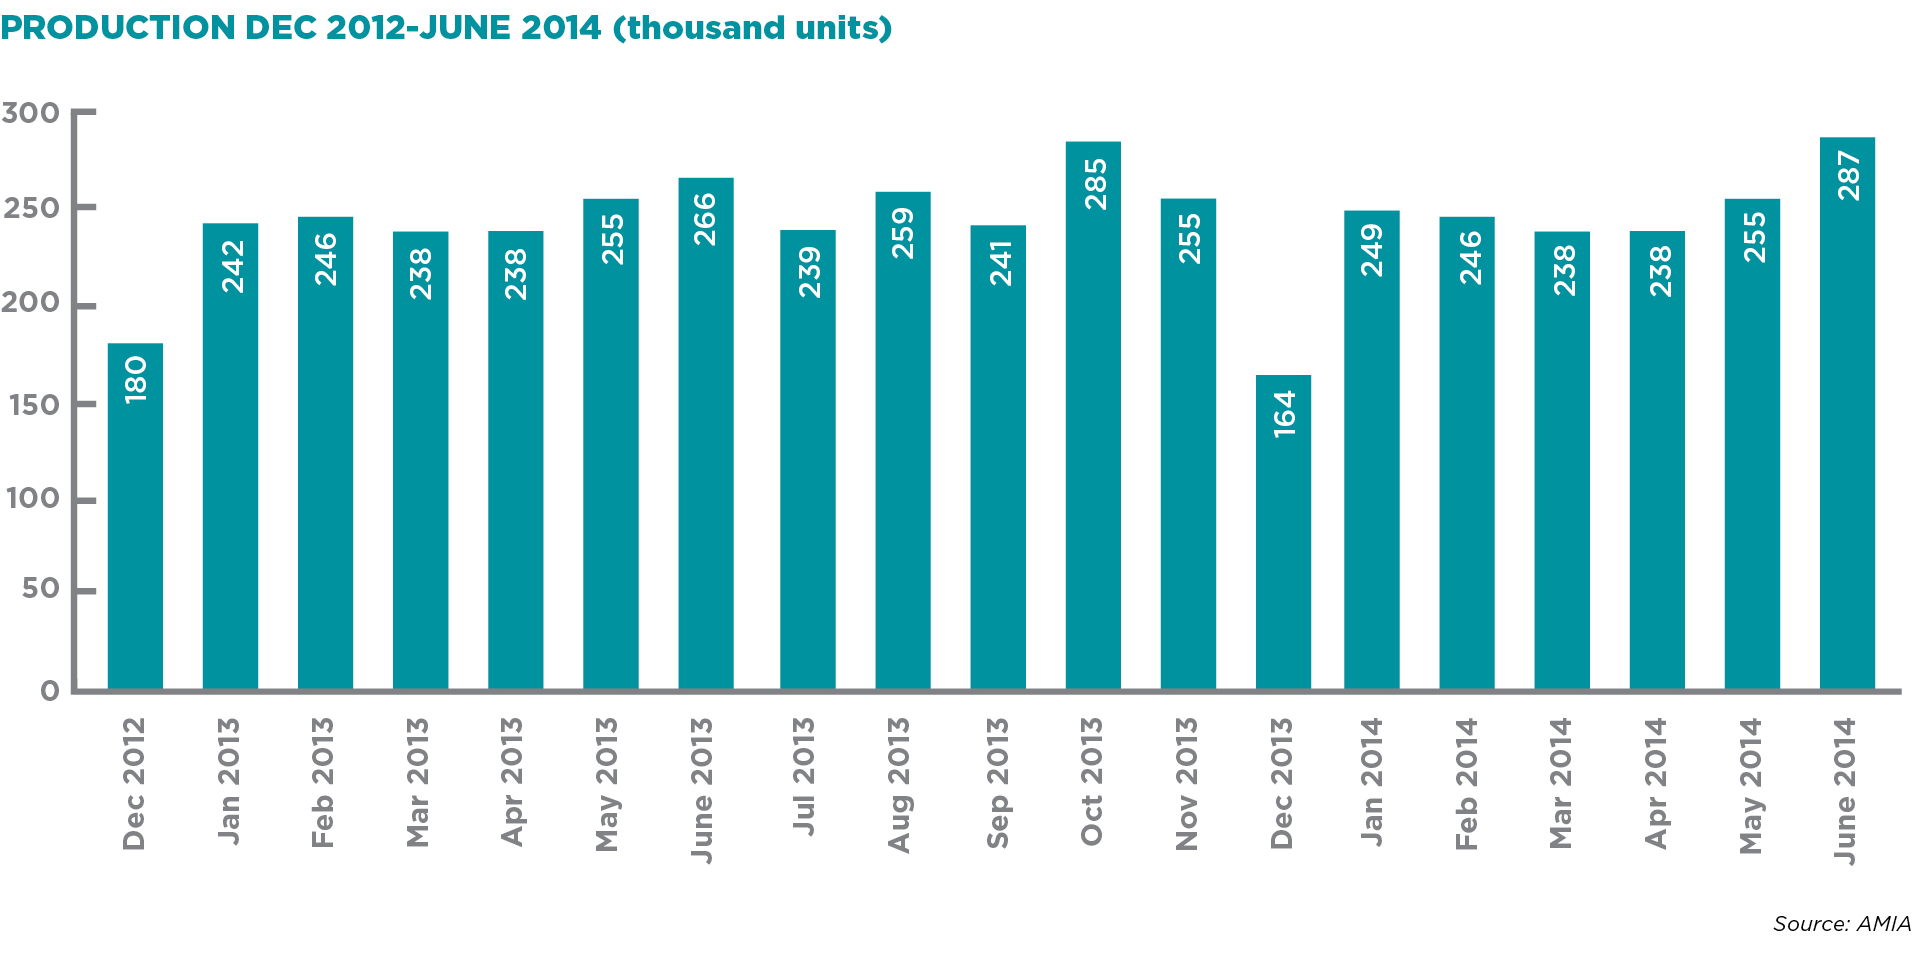 PRODUCTION DEC 2012-JUNE 2014 (thousand units)